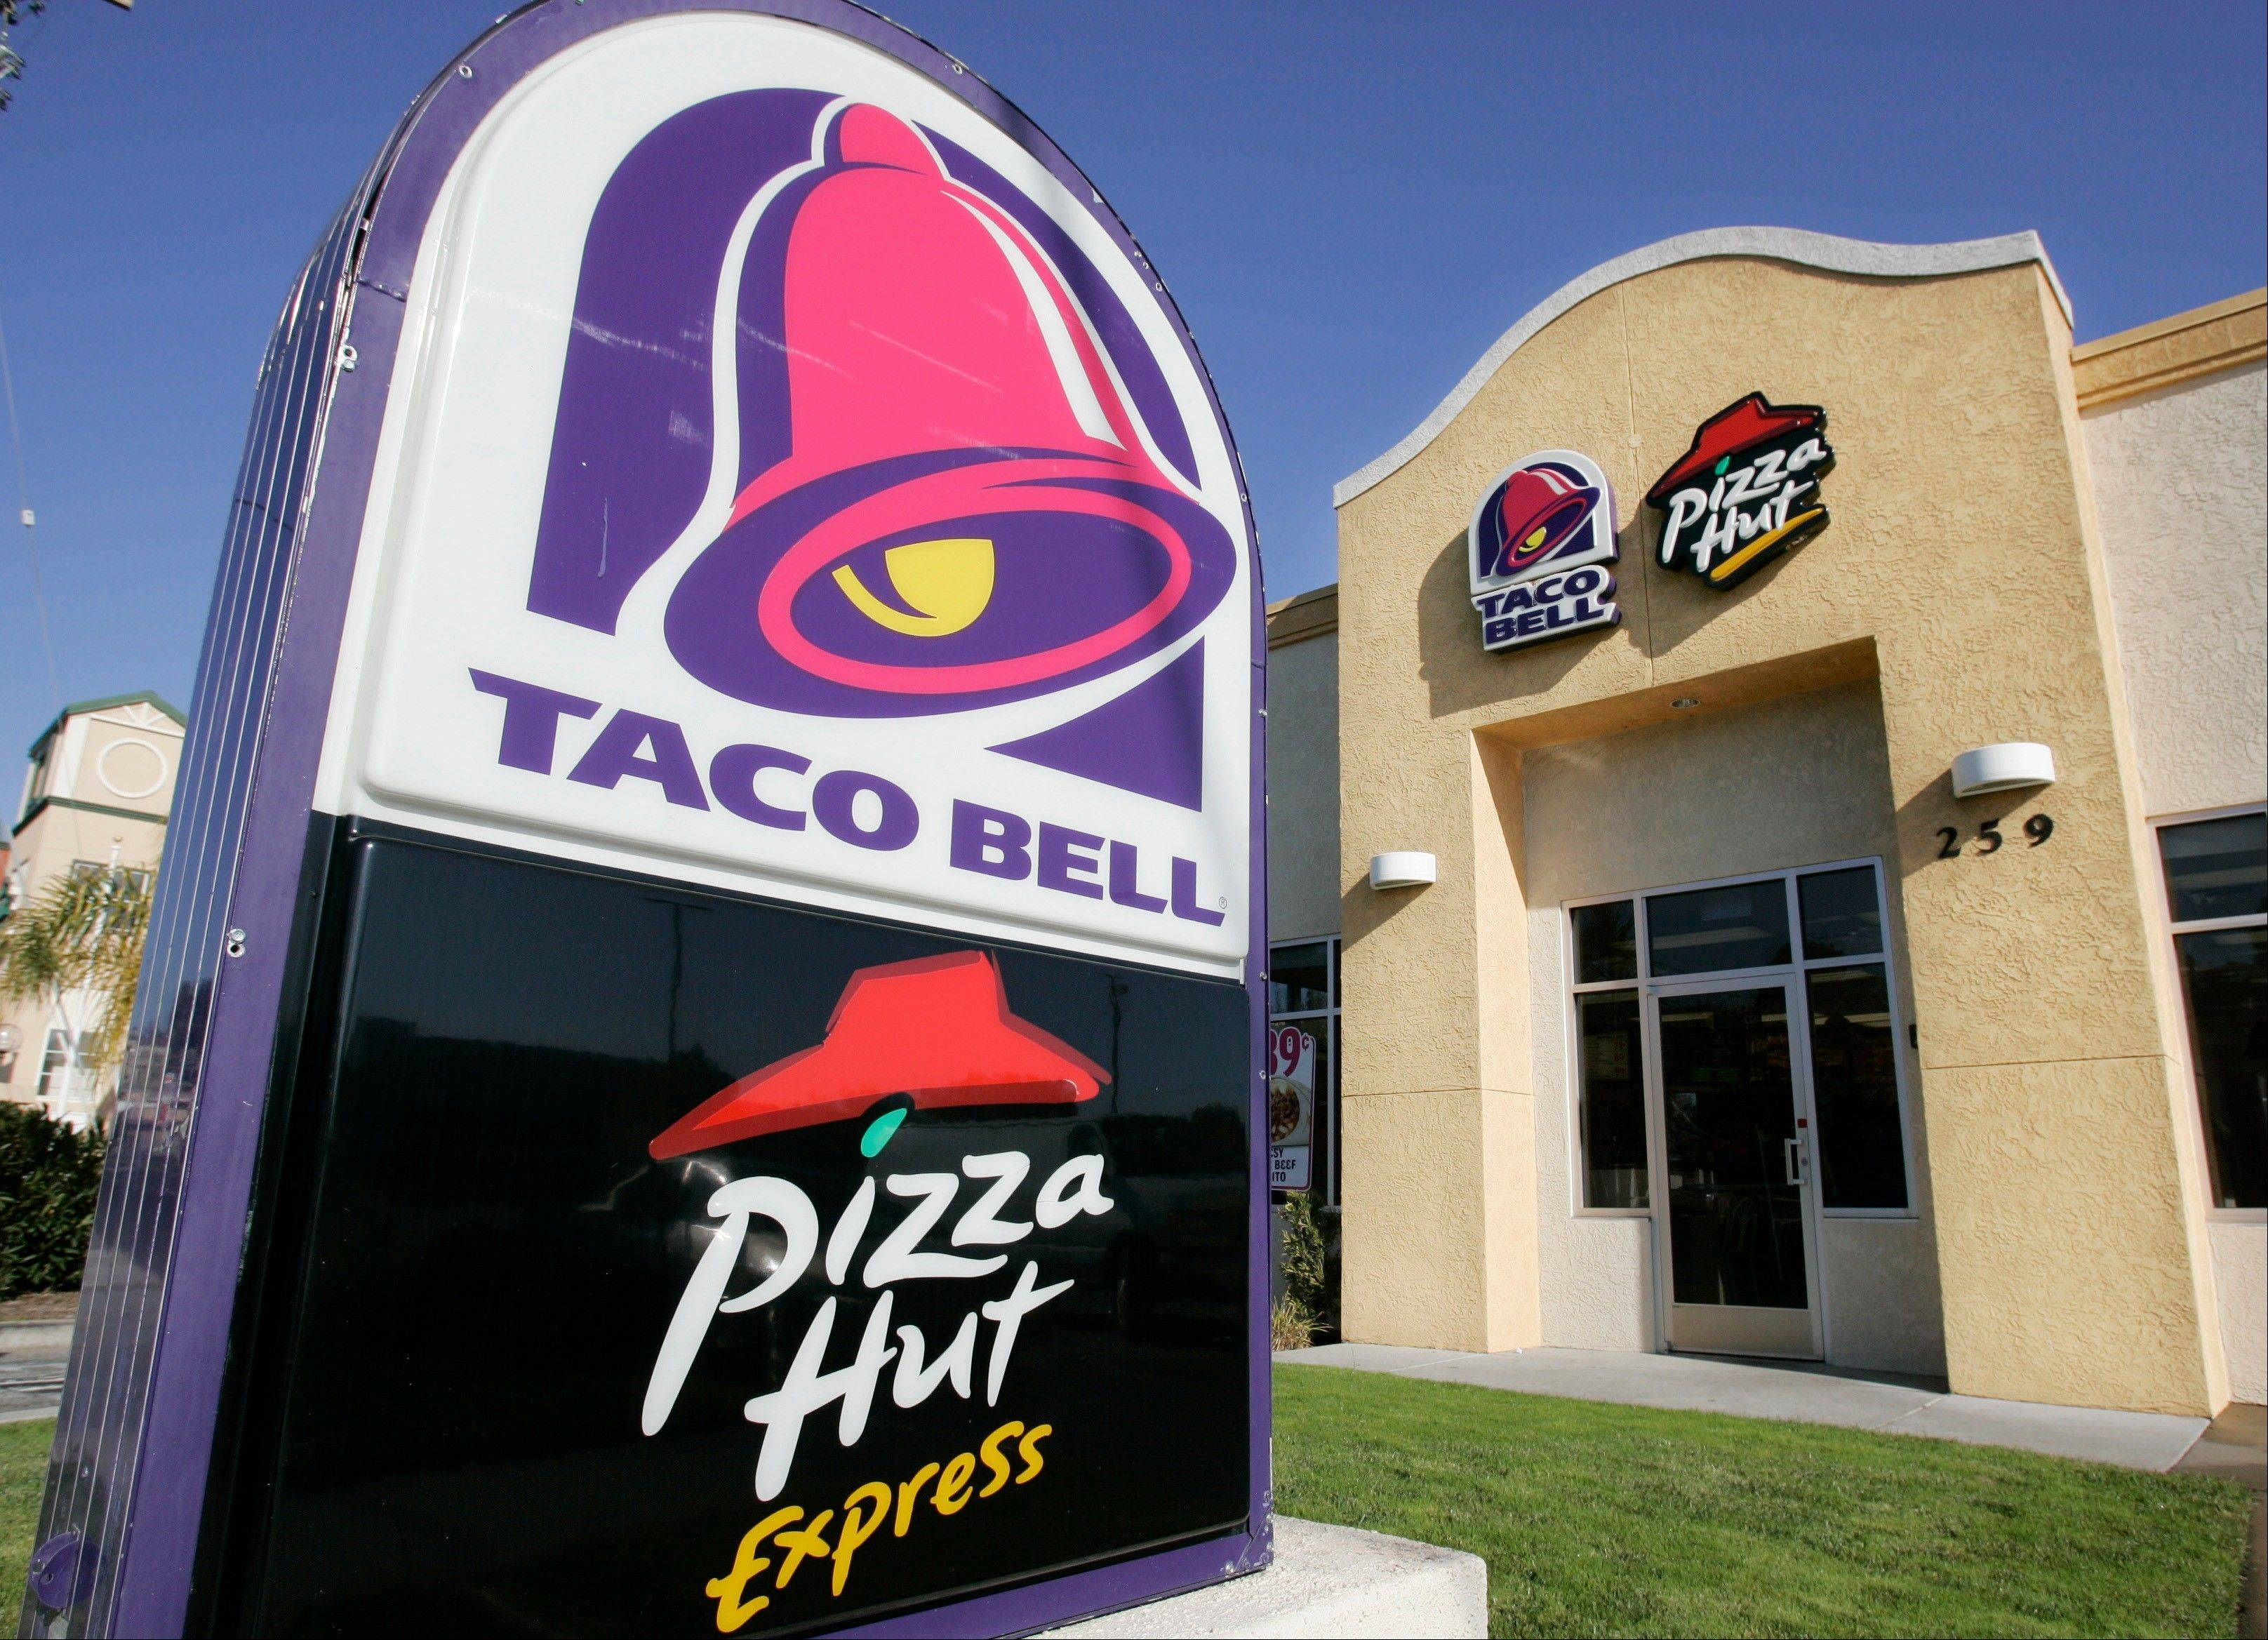 Taco Bell and Pizza Hut Express are shown in San Carlos, Calif.